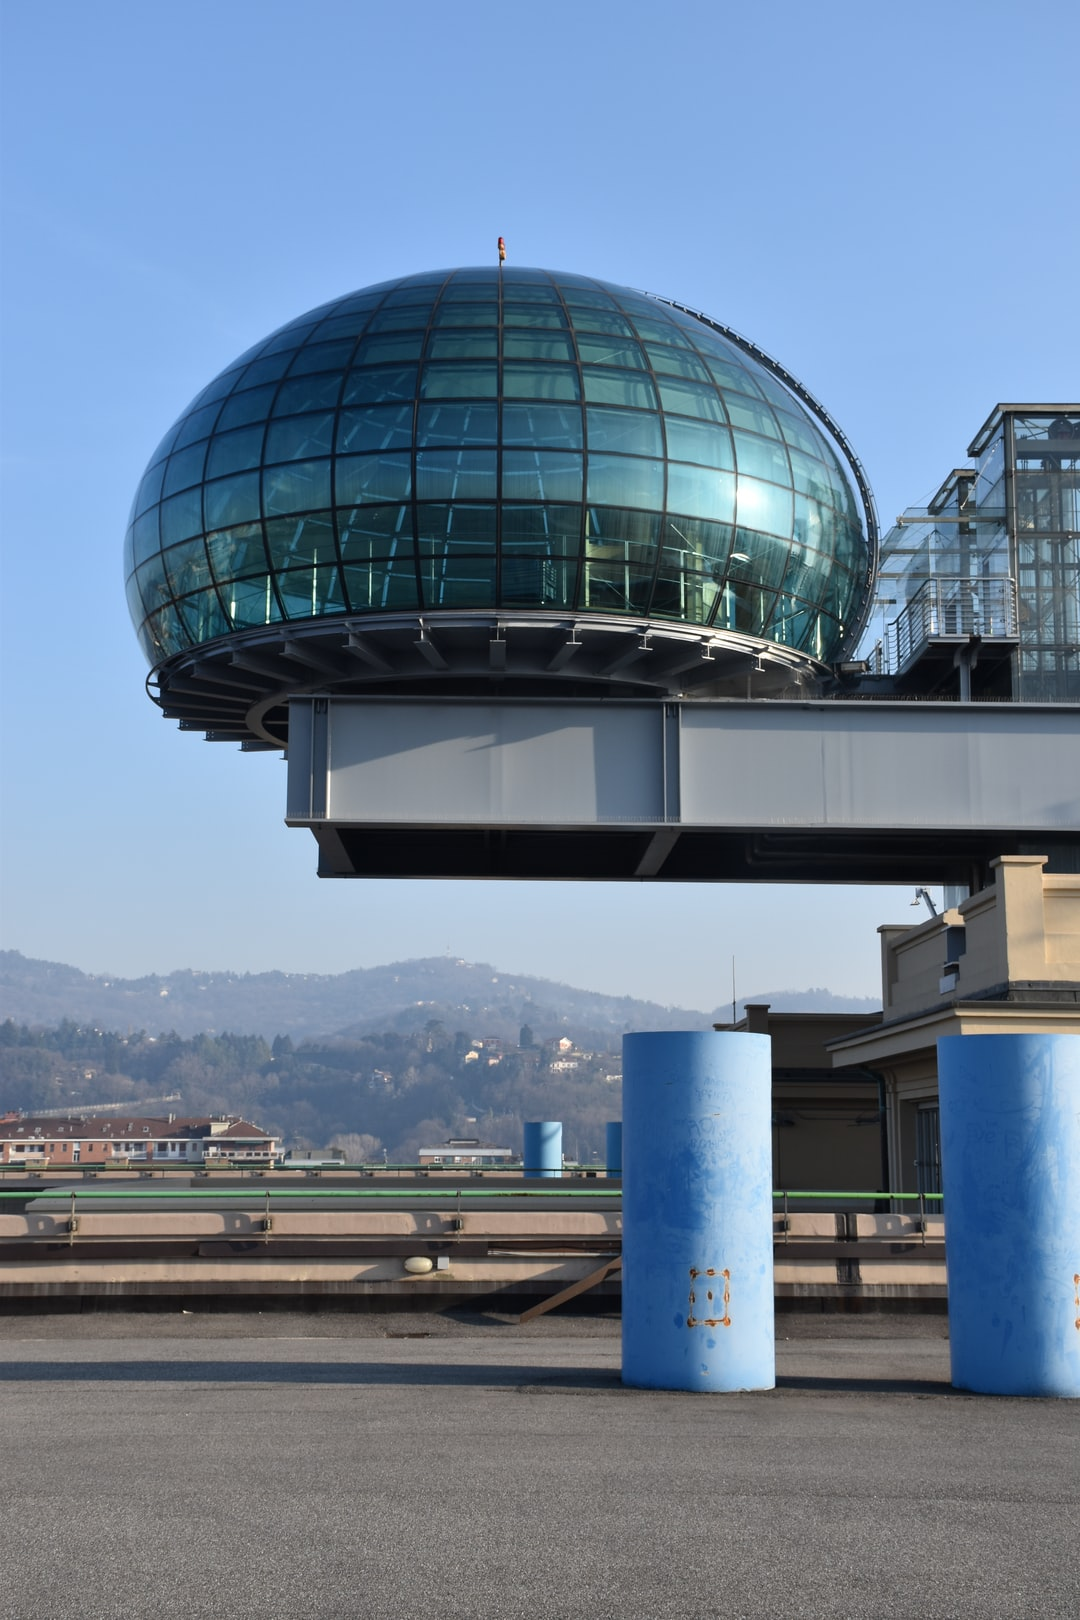 The bolla or bubble on top of the car test track on the roof of the former FIAT car factory in the Lingotto of quarter in Torino, Italy.